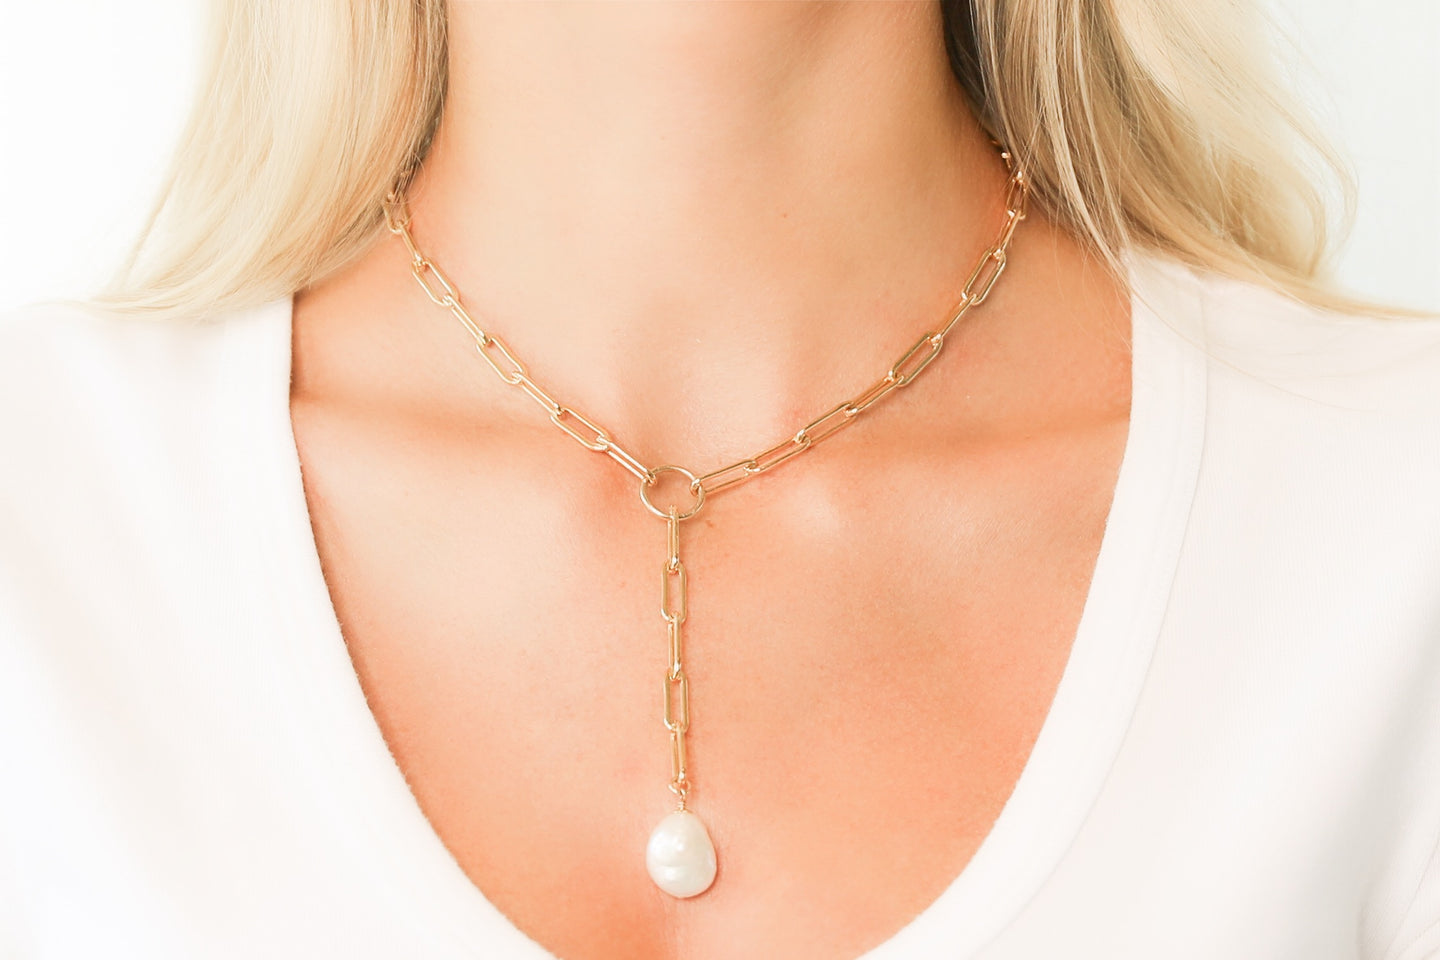 Medium Gold Oval Link Chain Lariat Necklace + White Freshwater Pearl